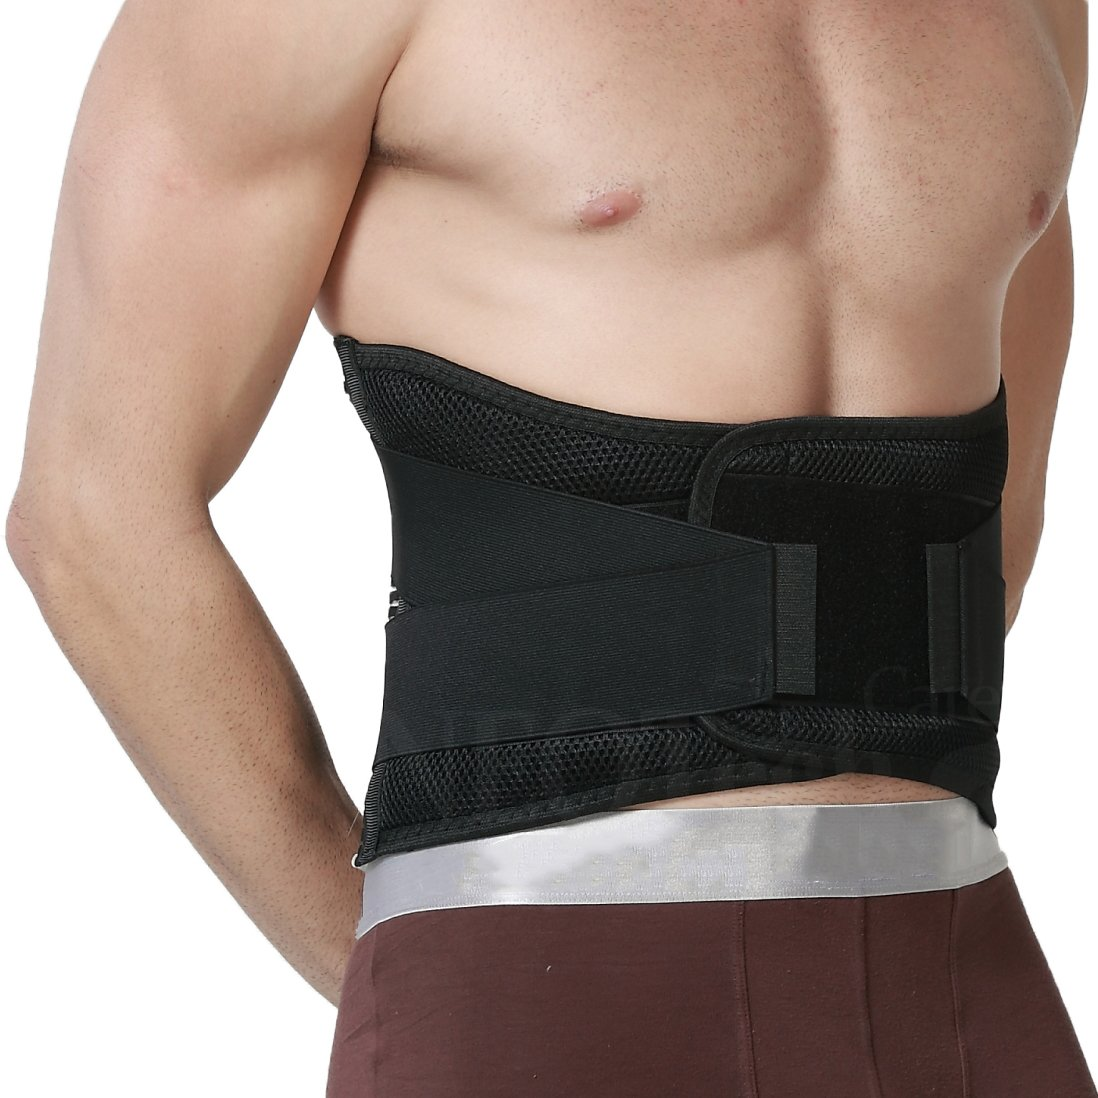 Neotech Care Back Brace - Lumbar Support Belt - Wide Protection, Adjustable Compression & Breathable - for Gym, Posture, Lifting, Work, Pain Relief - Black - Size XL